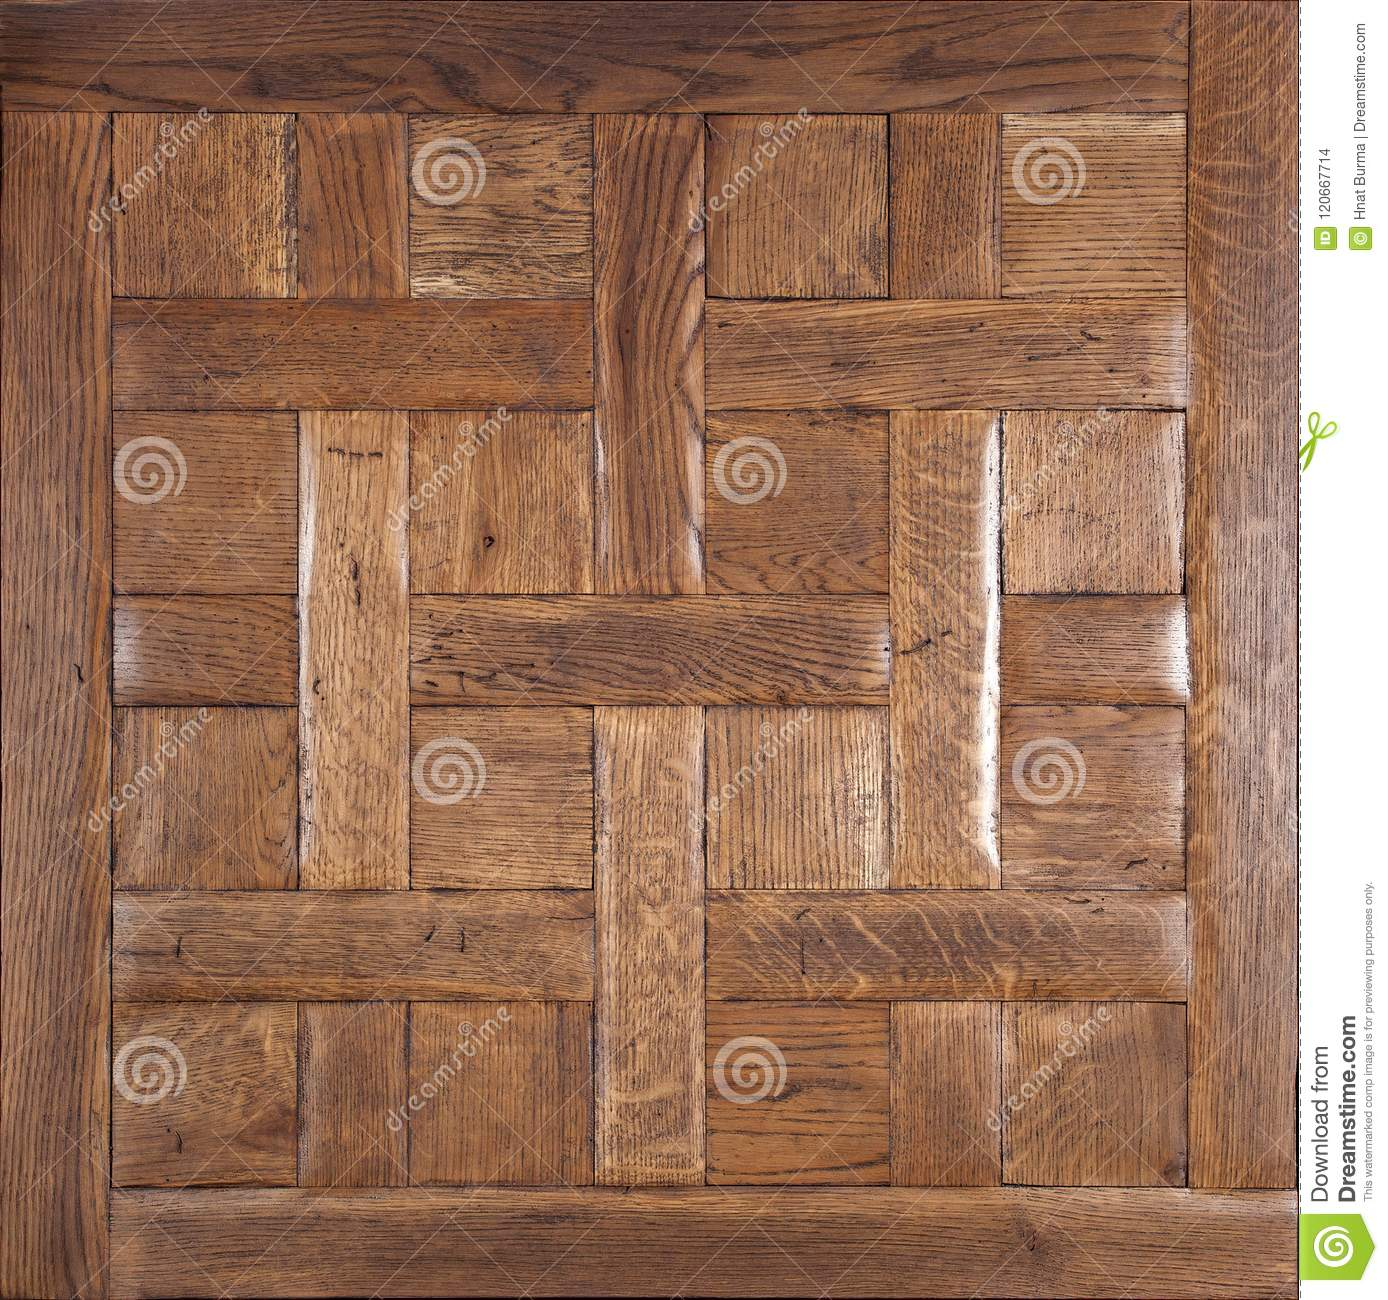 Elite Modular Parquet Natural Wooden Flooring With Luxury Texture And Pattern Top View